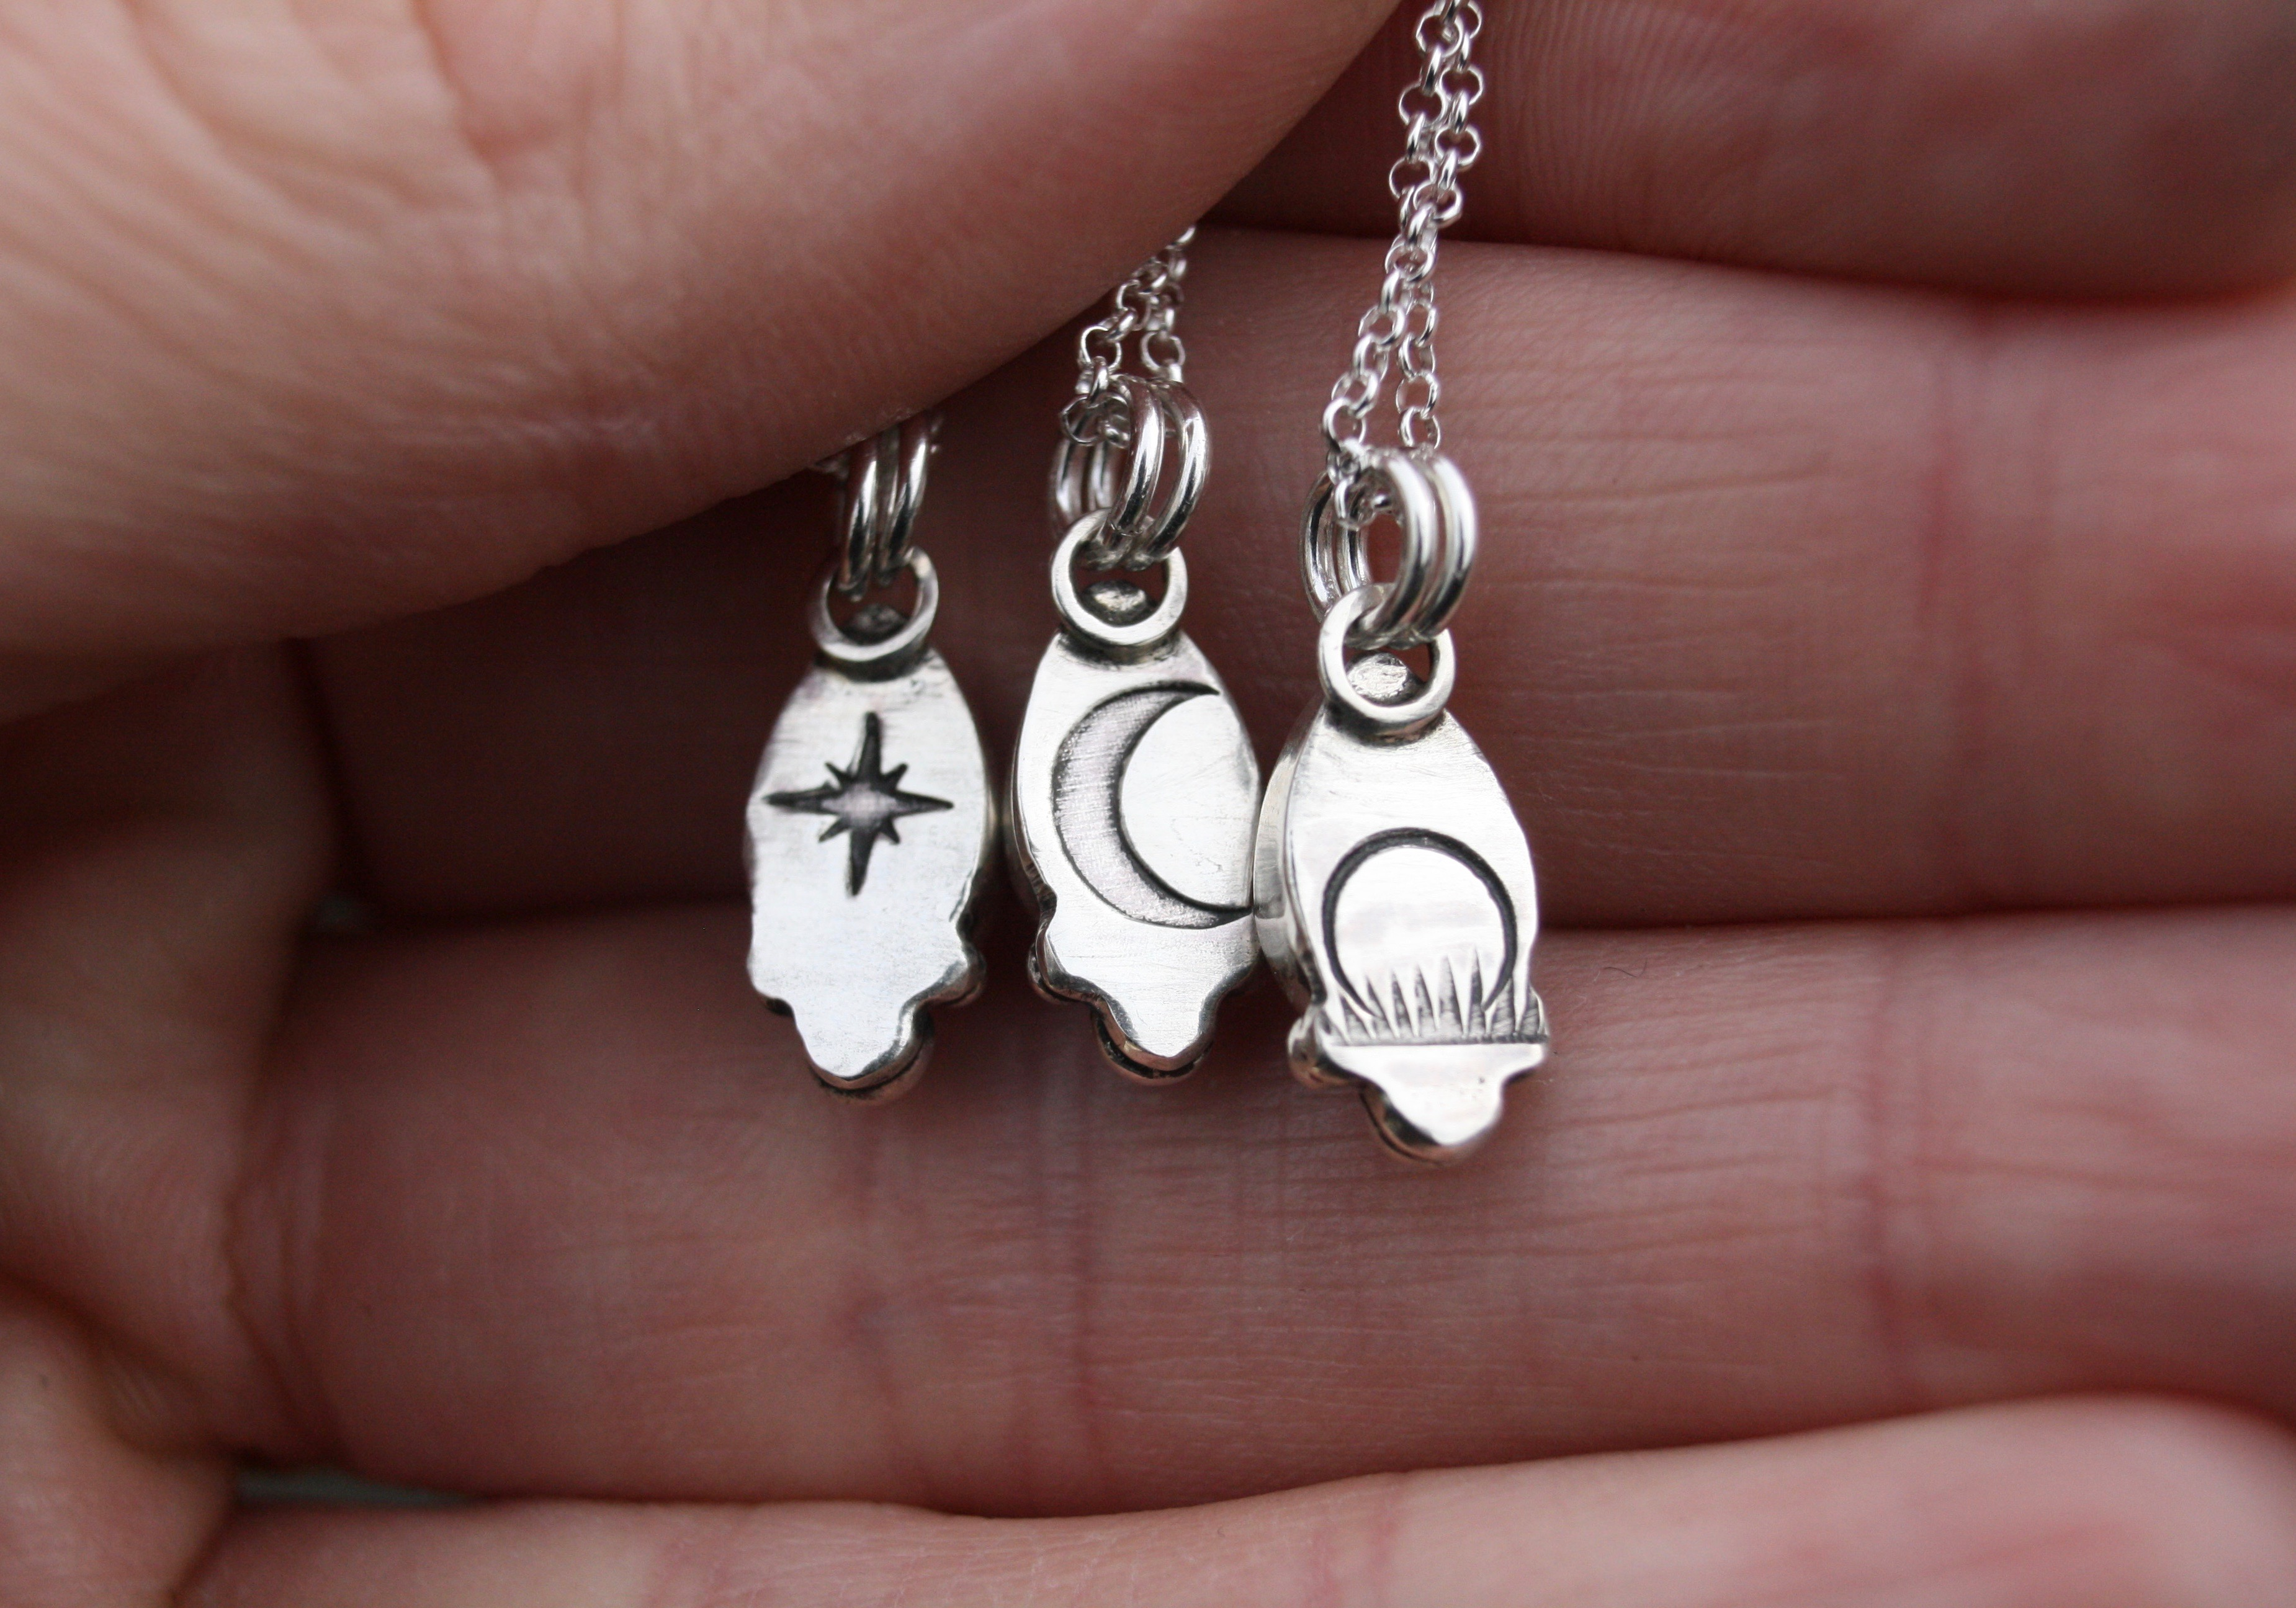 Matching Moonstone Necklaces (Back)